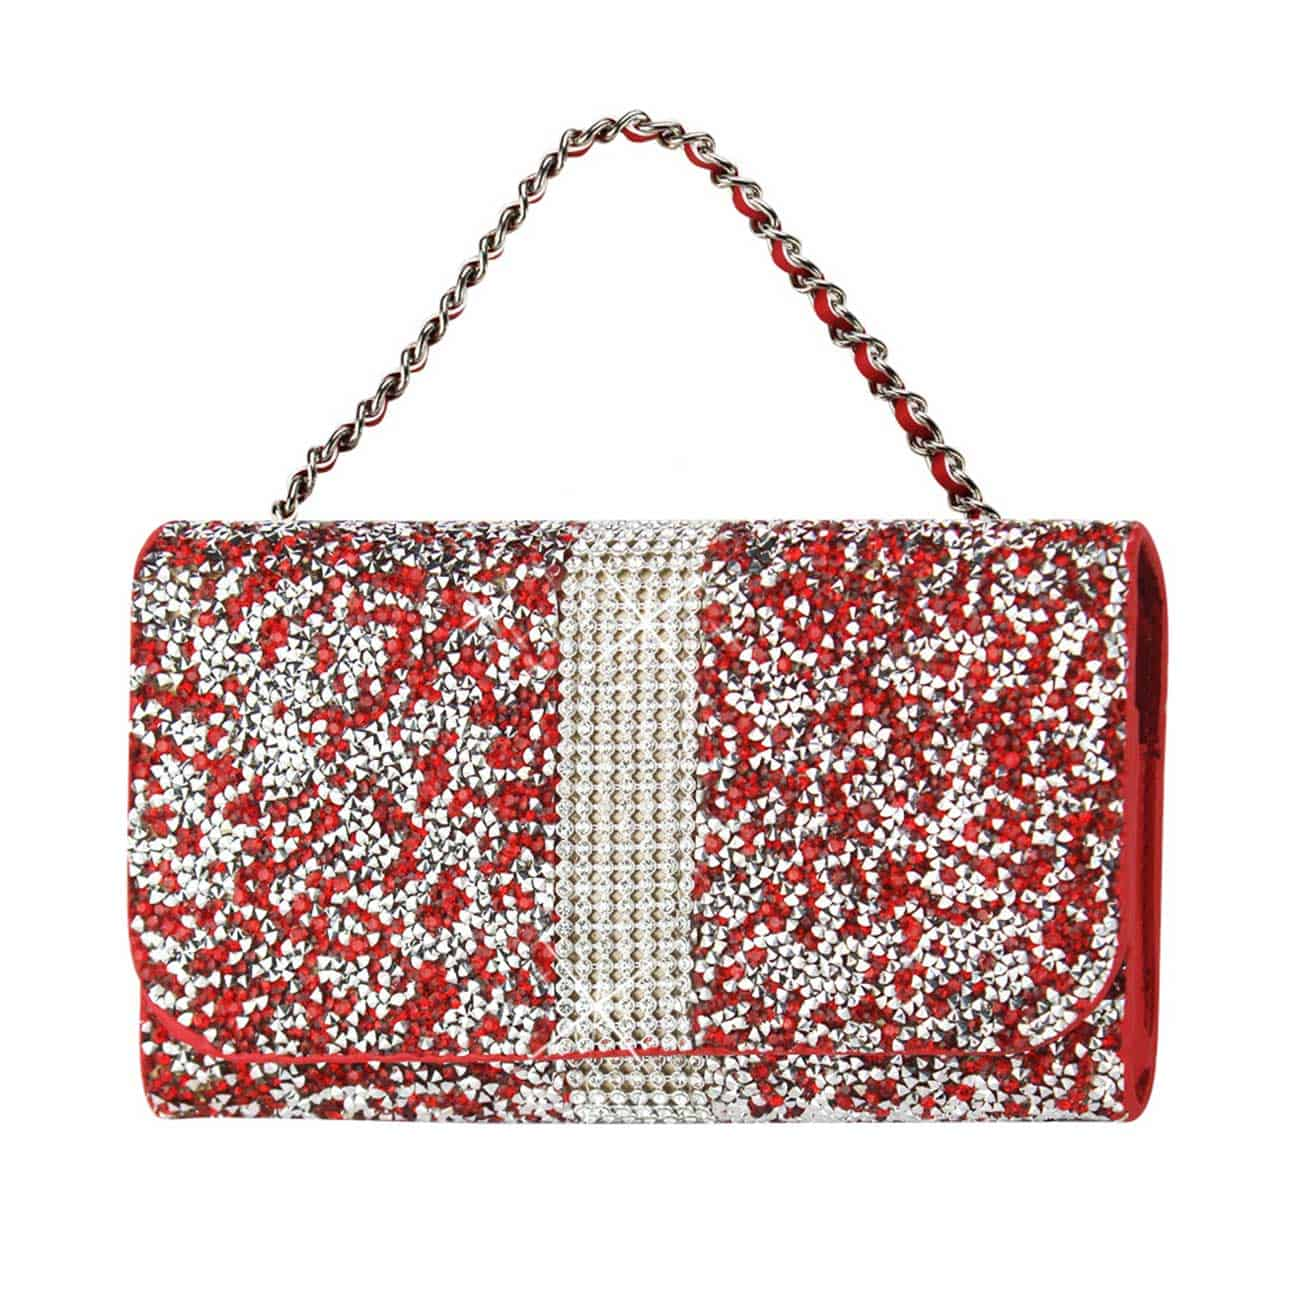 HORIZONTAL DIAMONDS POUCH IPHONE 6 PLUS/ 6S PLUS/ 7 PLUS/ SAMSUNG GALAXY S8 EDGE IN RED (6.62X3.46X0.68 INCHES PLUS)